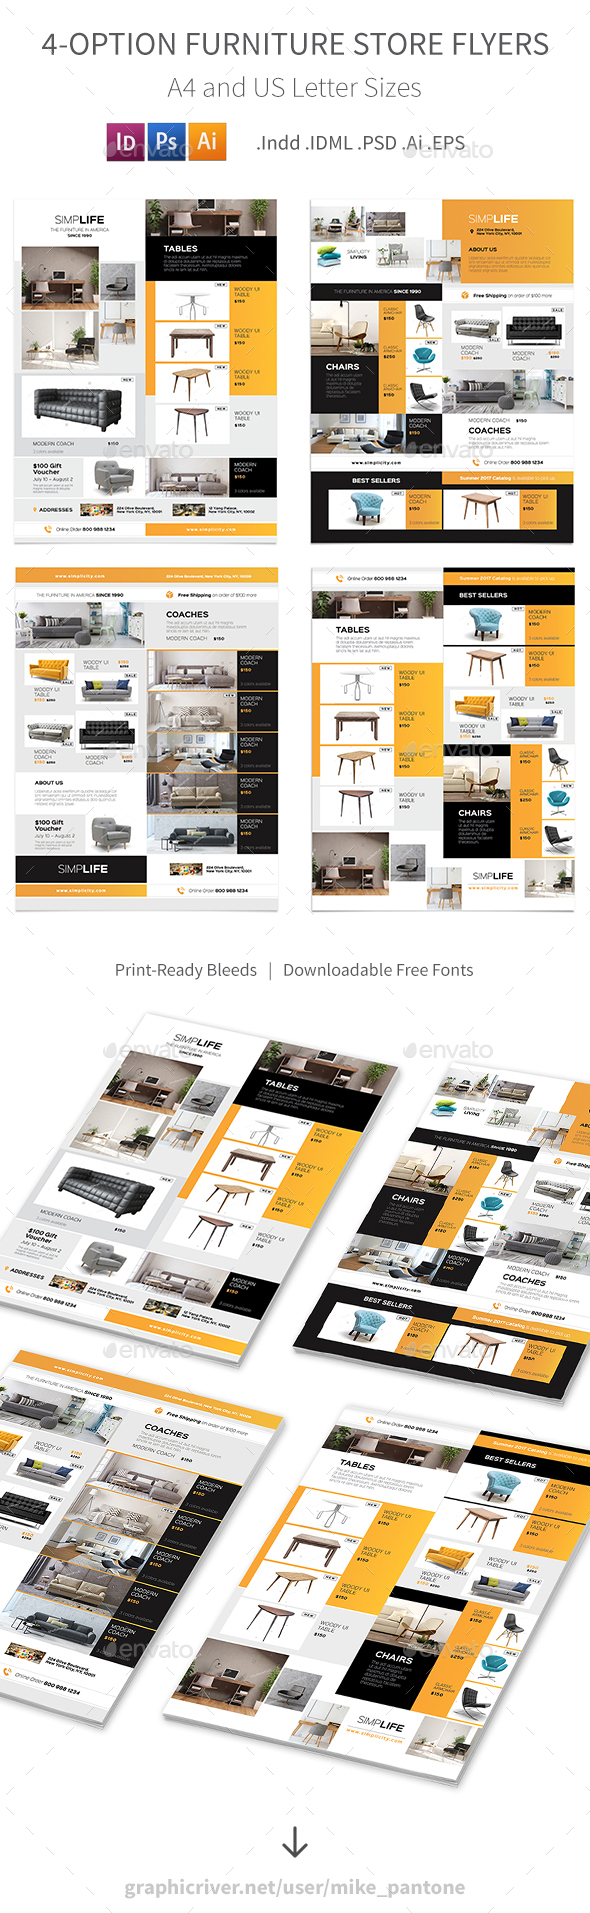 Furniture Store Flyers 3 – 4 Options - Corporate Flyers